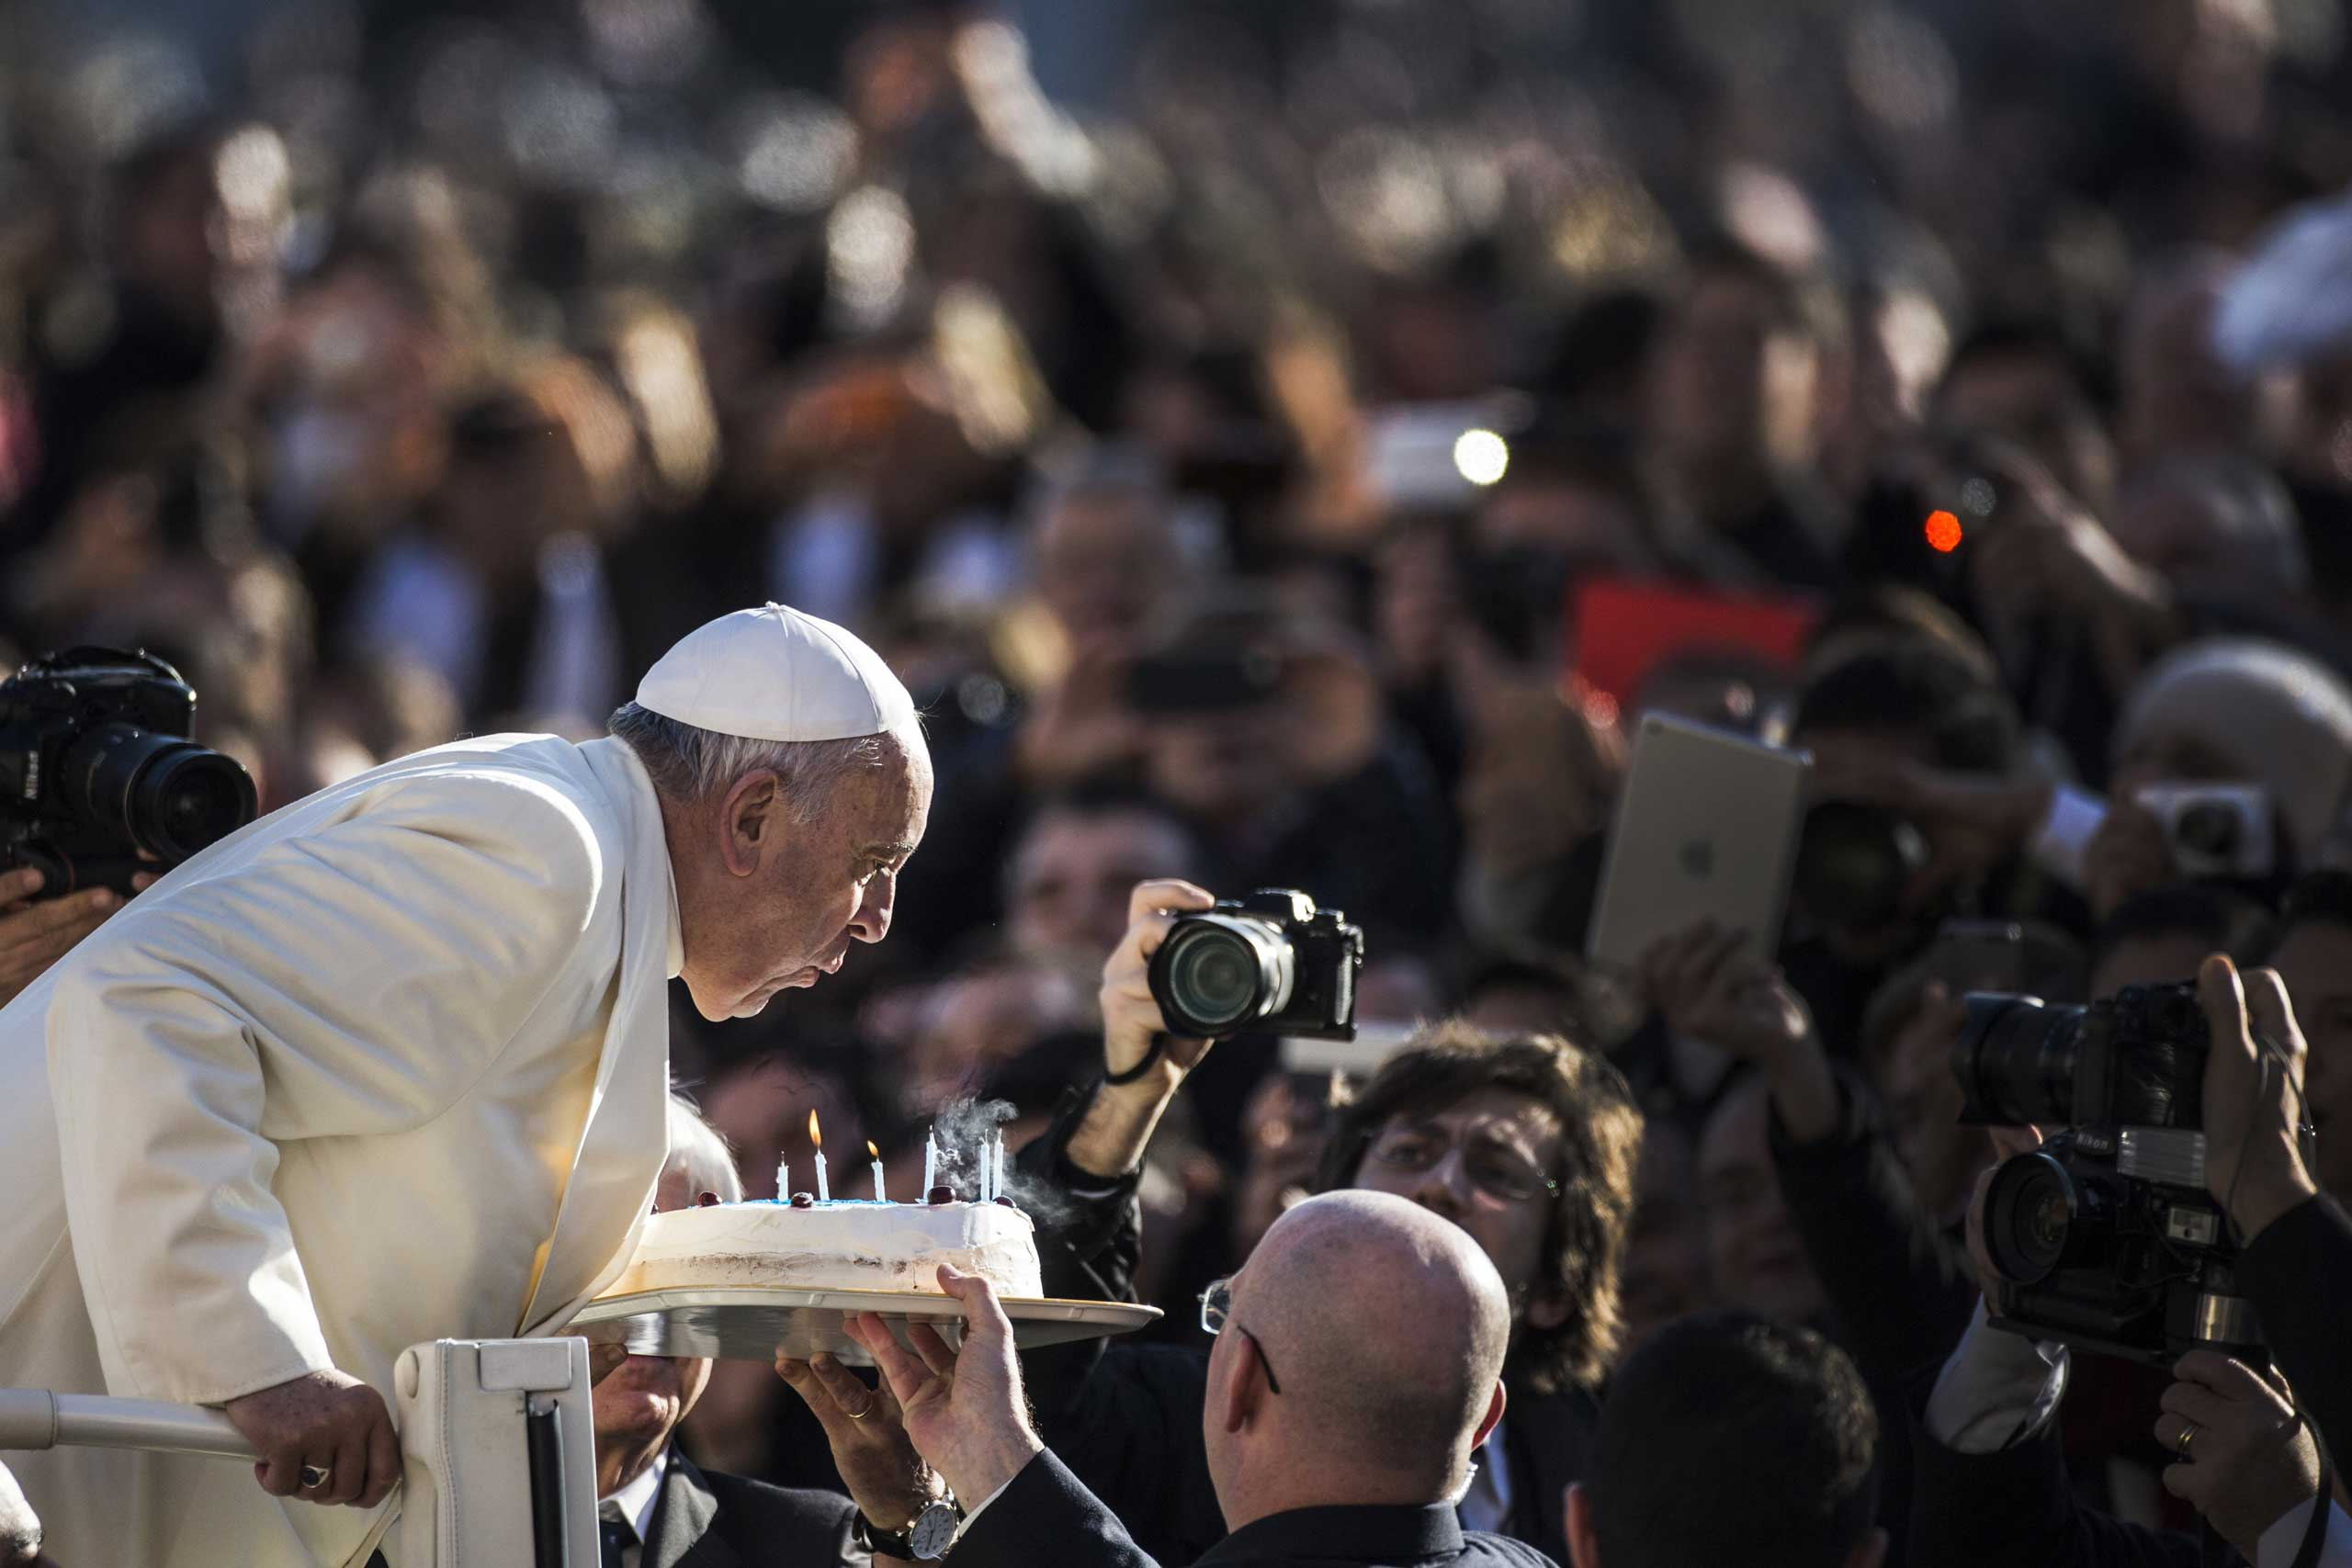 Dec. 17, 2014. Pope Francis blows out candles on a birthday cake on the occasion of his 78th birthday during his weekly general audience in St. Peter's Square at the Vatican.